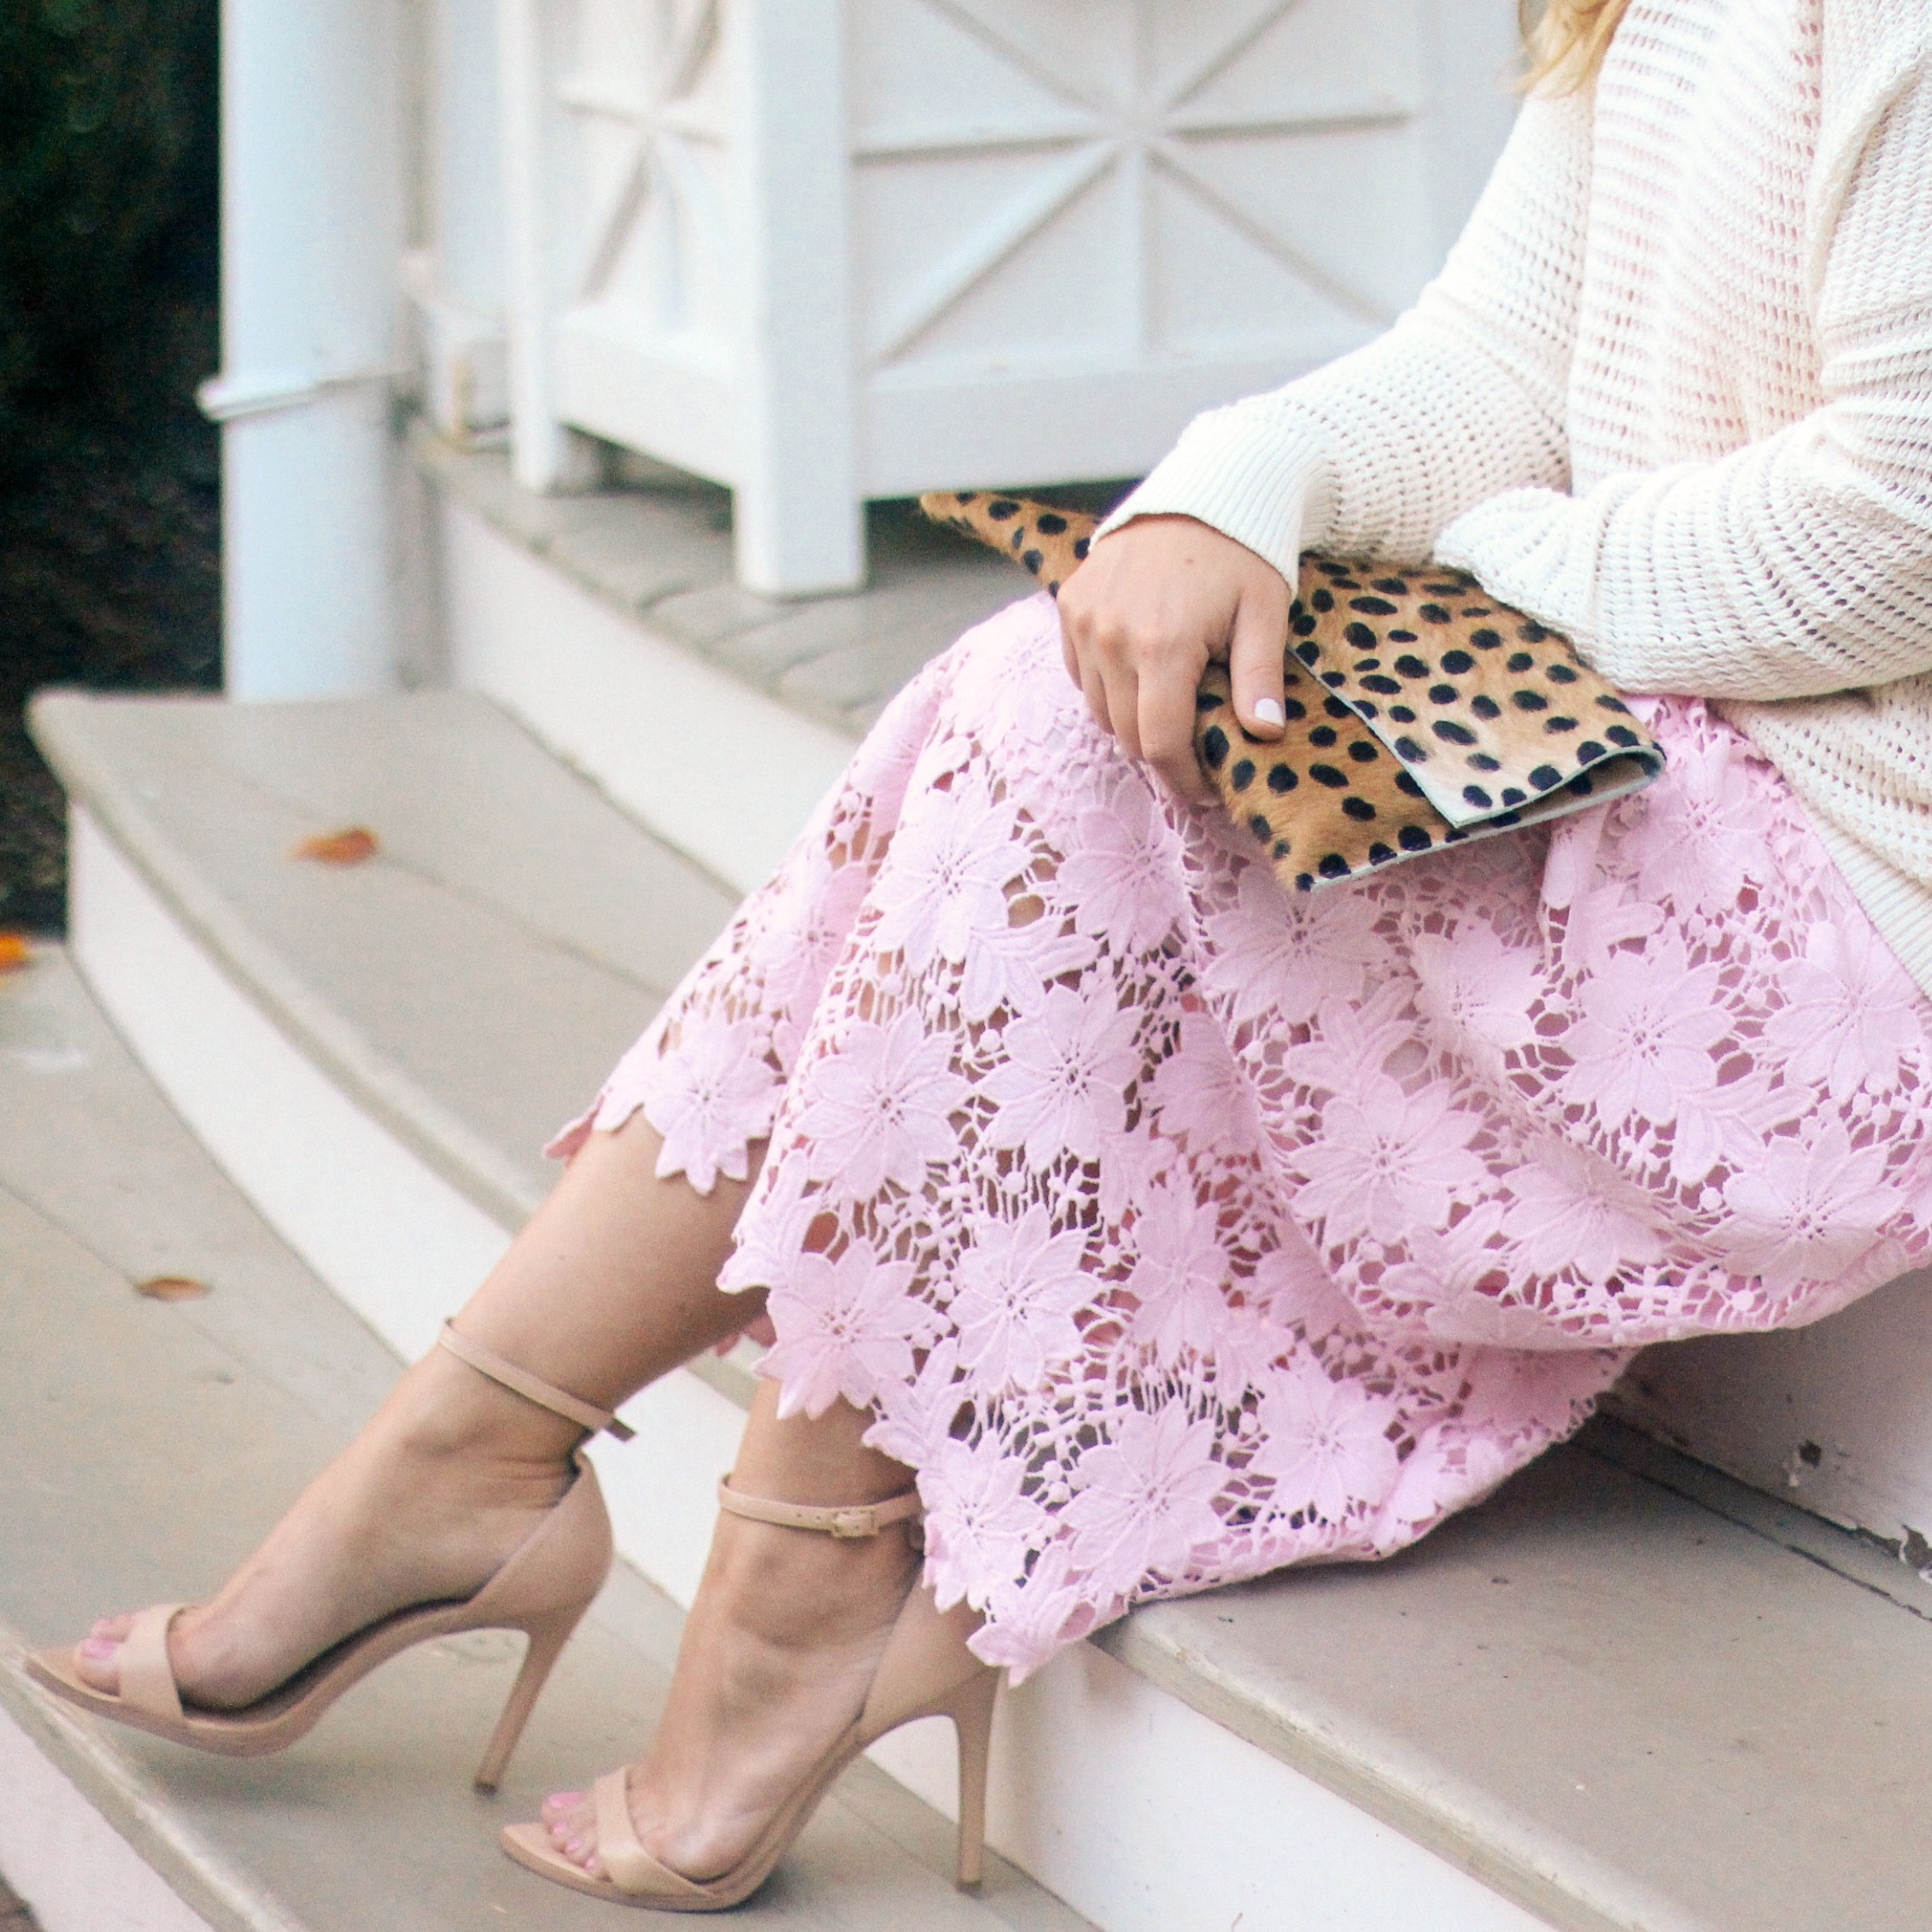 Slouchy Sweater, Pink Lace Dress and Leopard Clutch